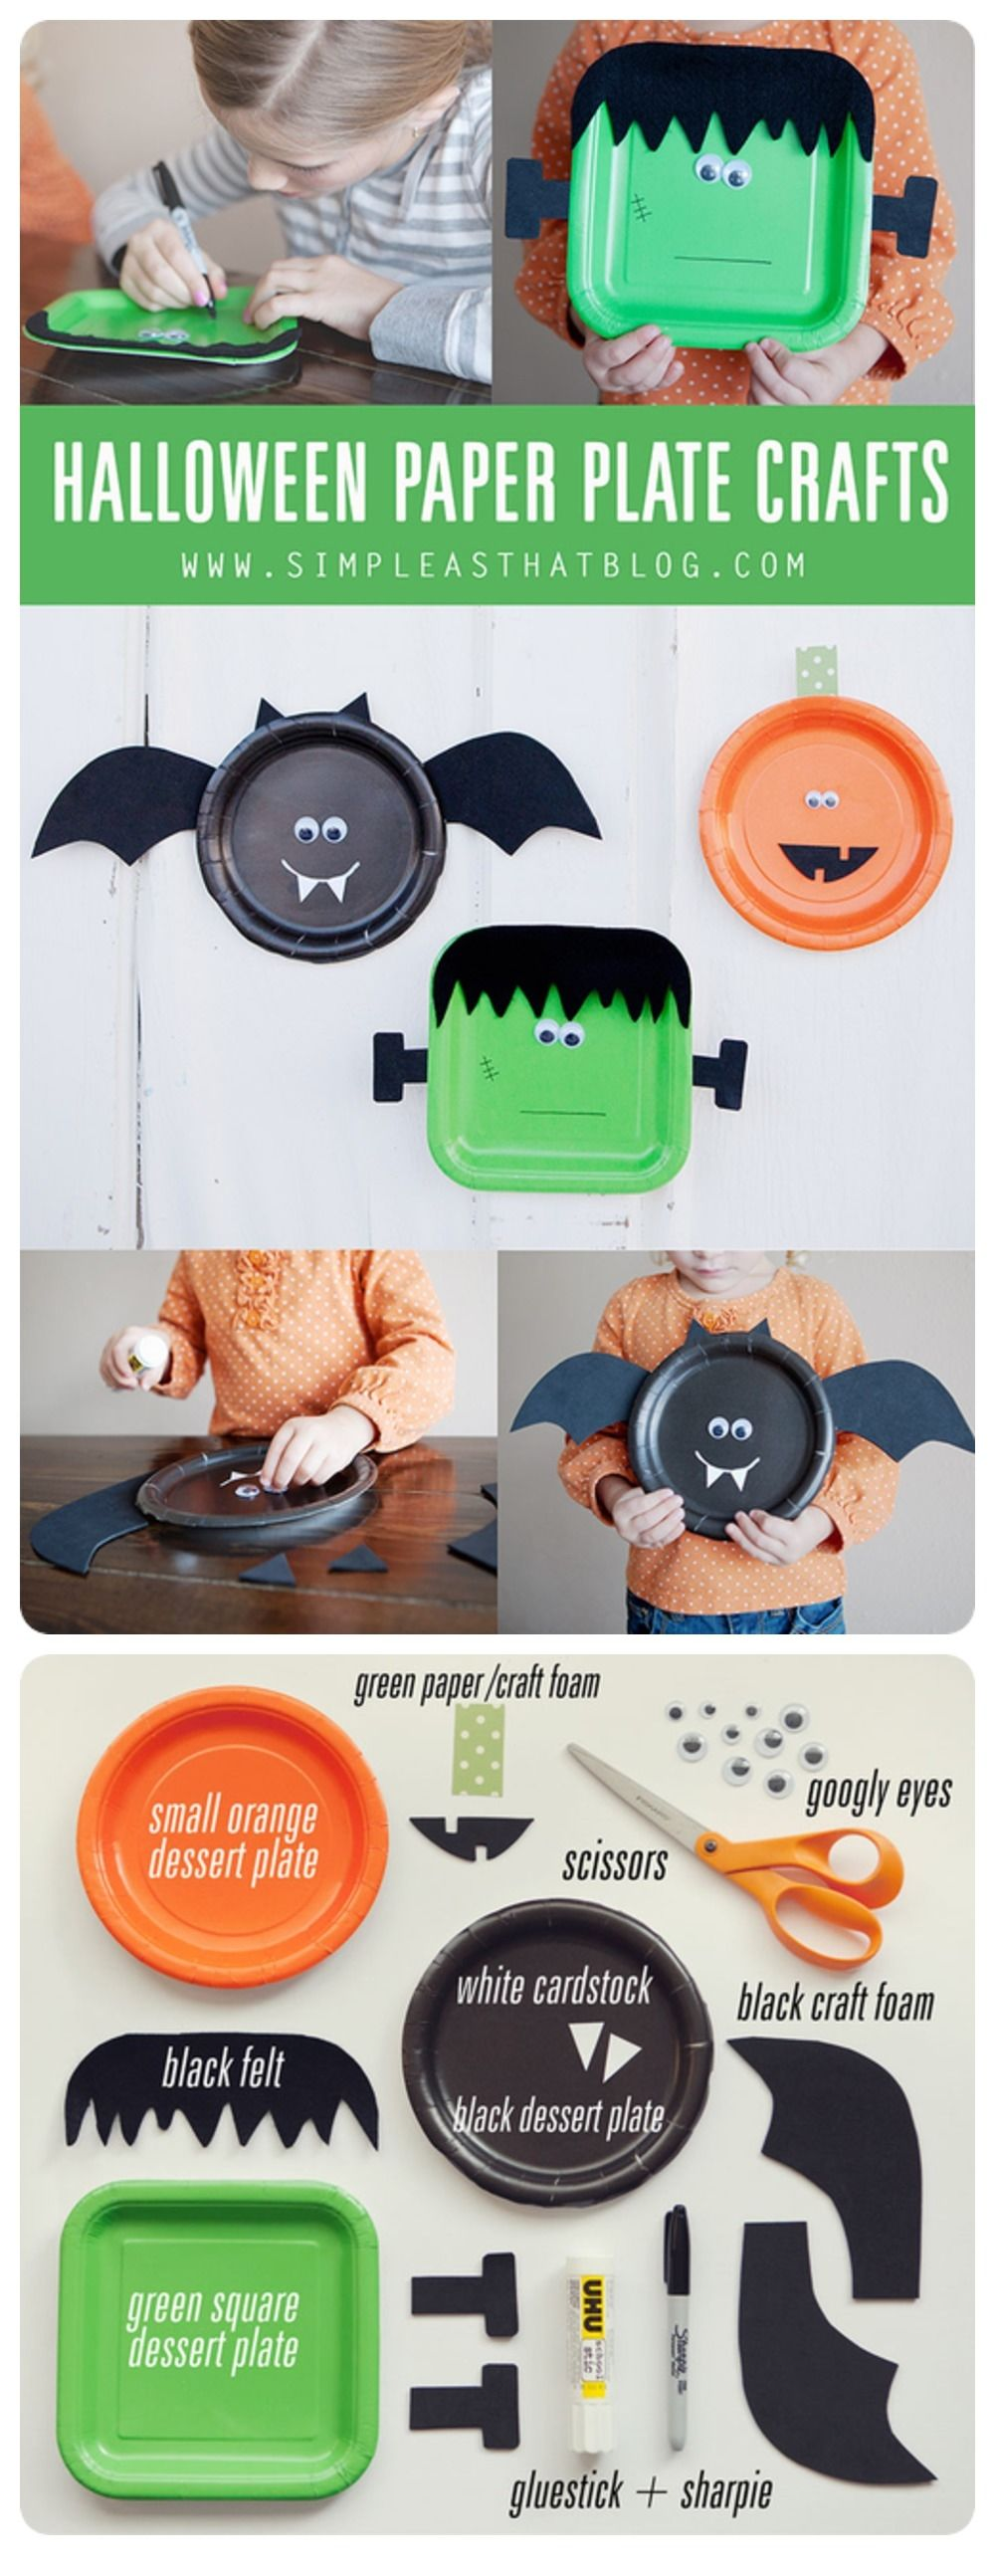 Halloween paper plate crafts pictures photos and images for halloween paper plate crafts pictures photos and images for facebook tumblr pinterest and twitter jeuxipadfo Image collections